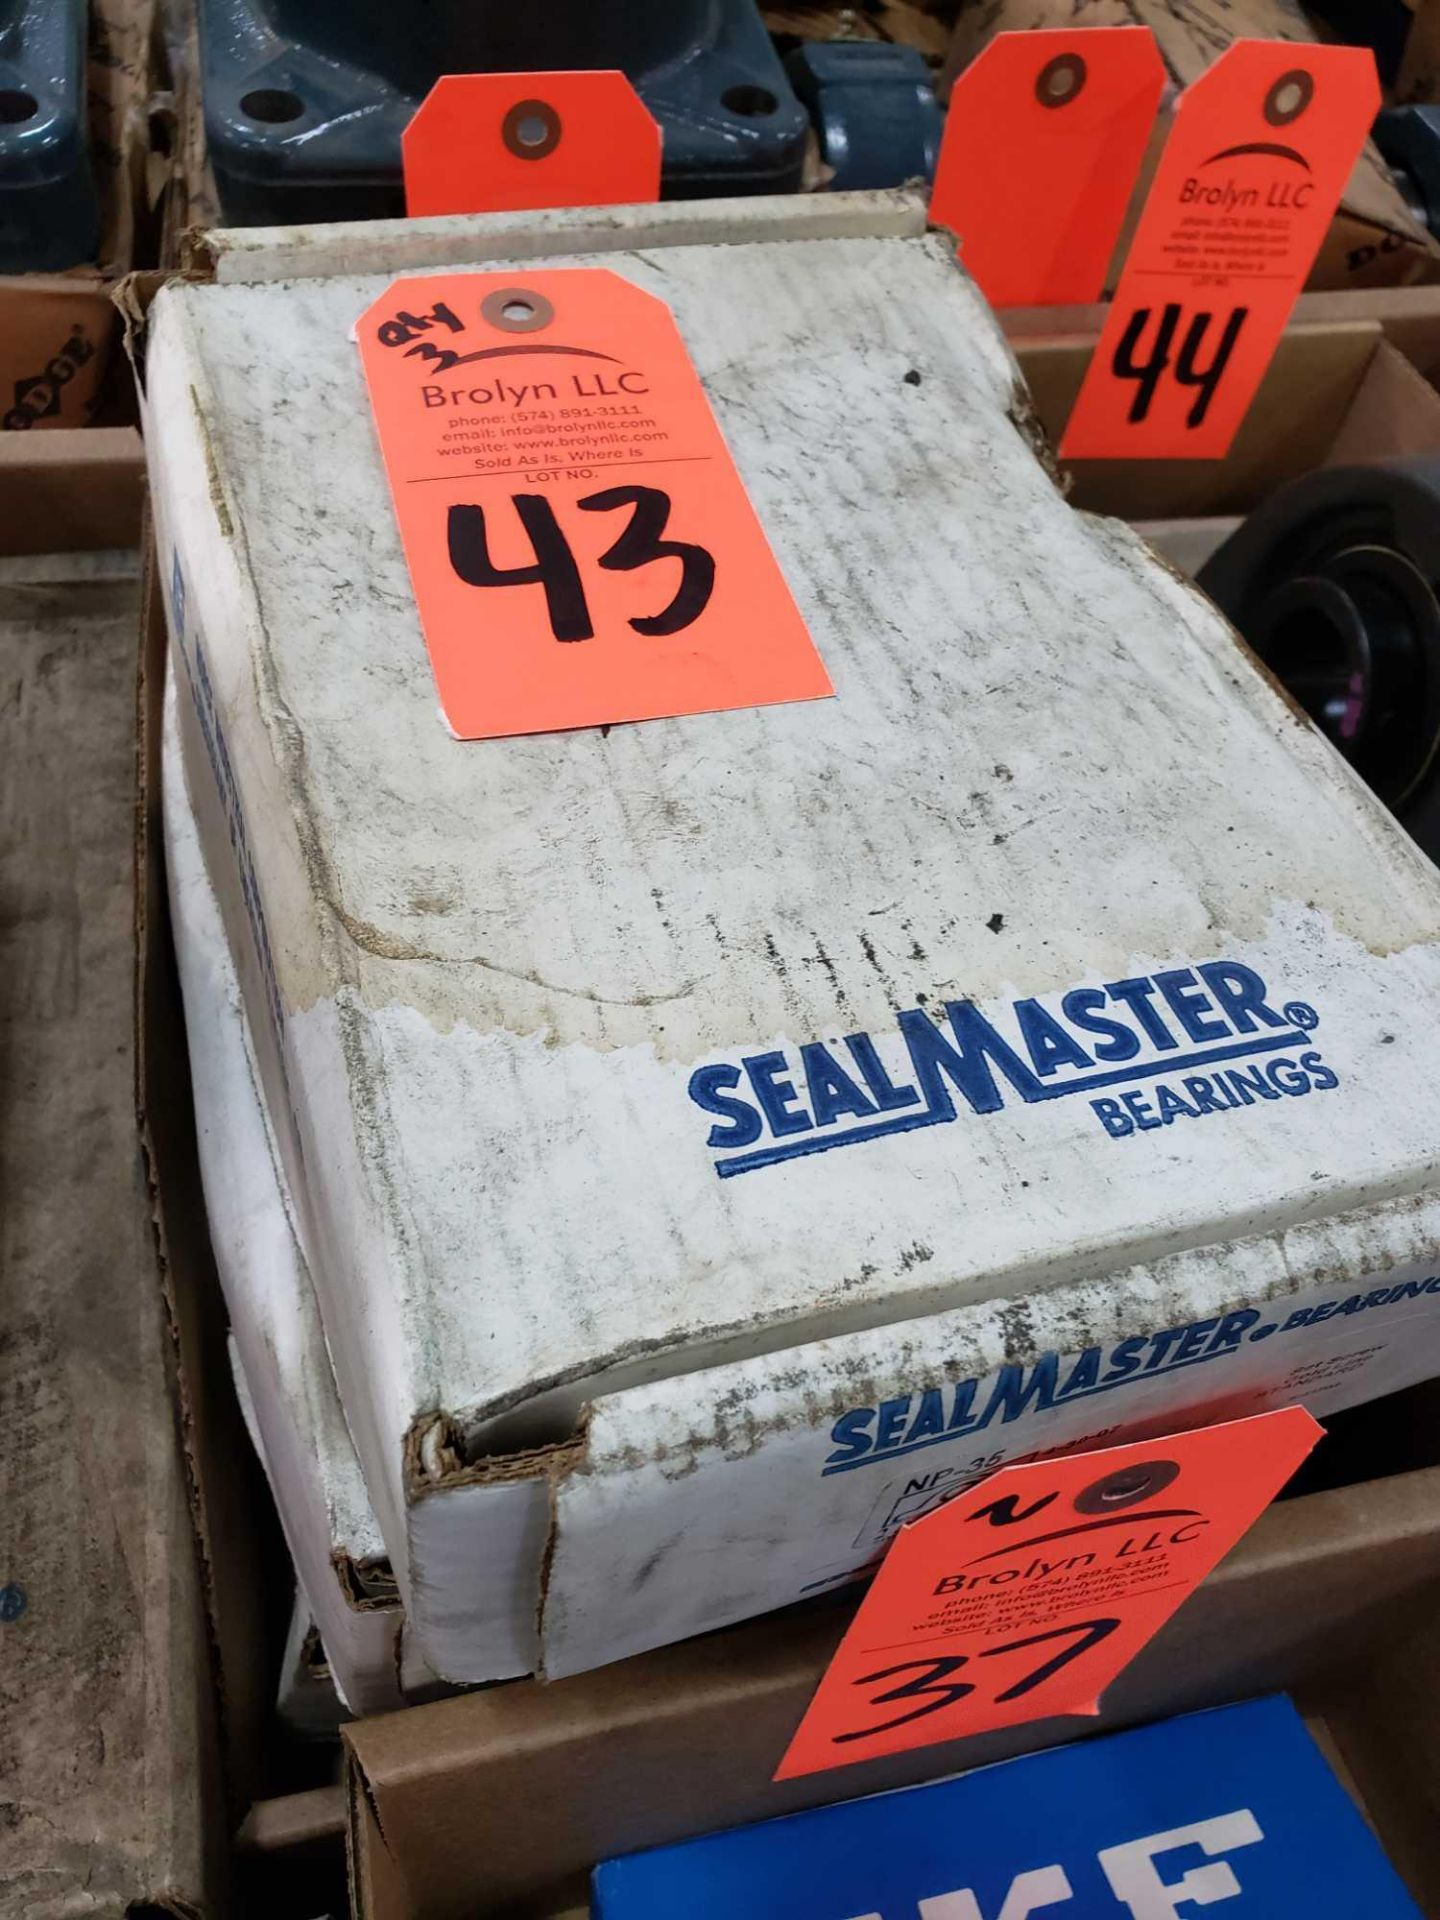 Lot 43 - Qty 3 - Sealmaster Bearings Model NP-35. New in boxes.